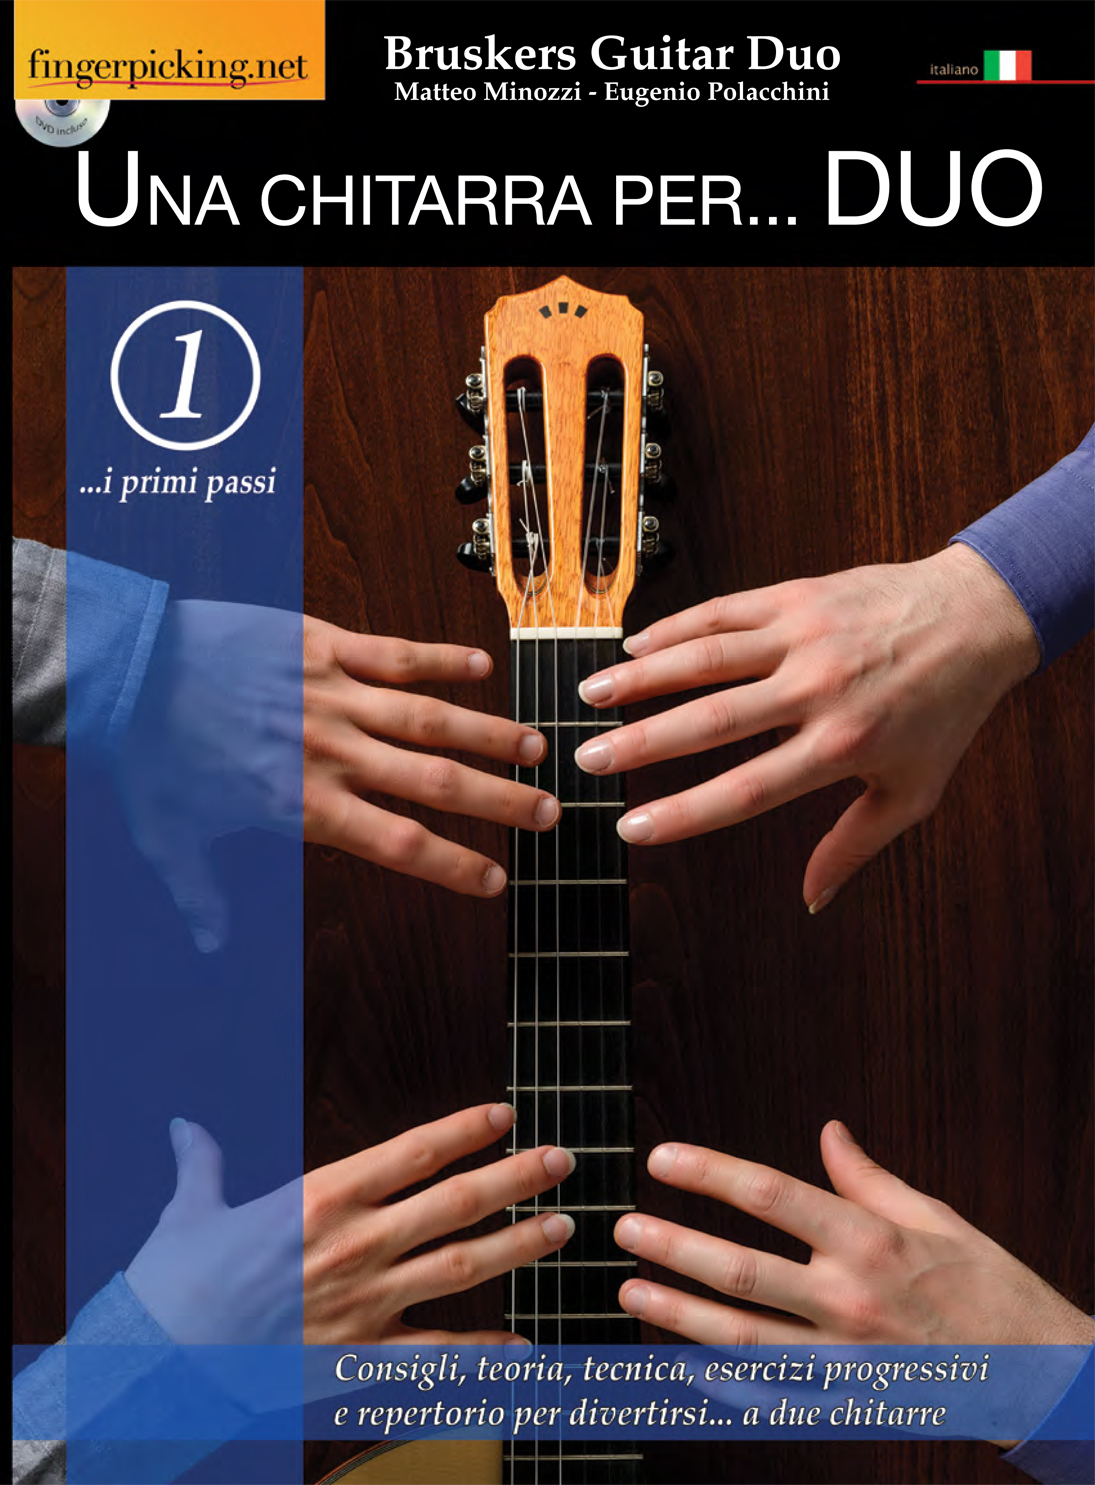 Una Chitarra per Duo - book cover- Bruskers Guitar Duo